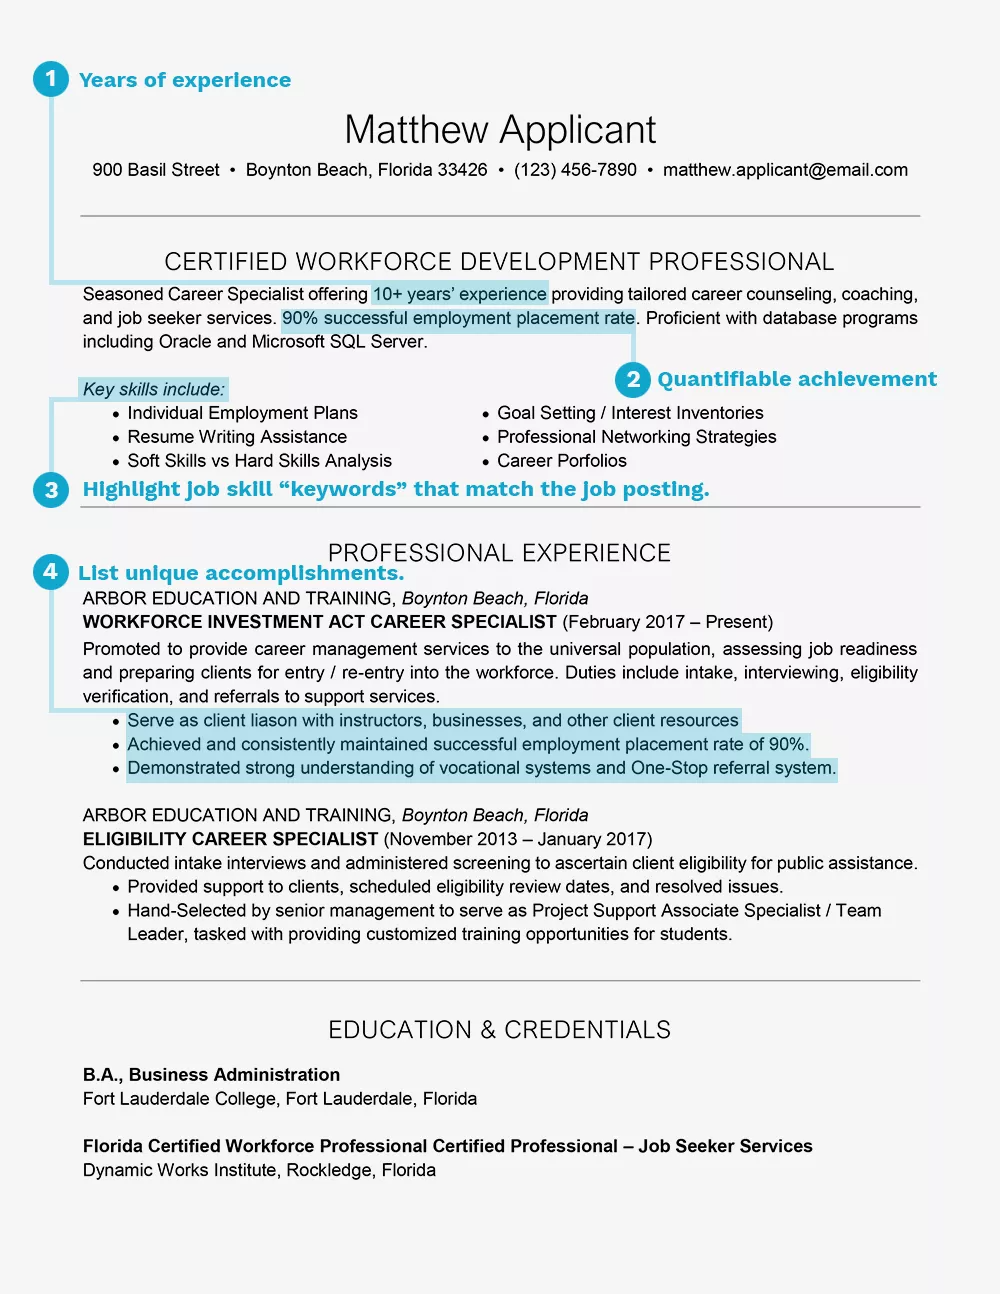 How to Write a Resume Summary Statement With Examples in